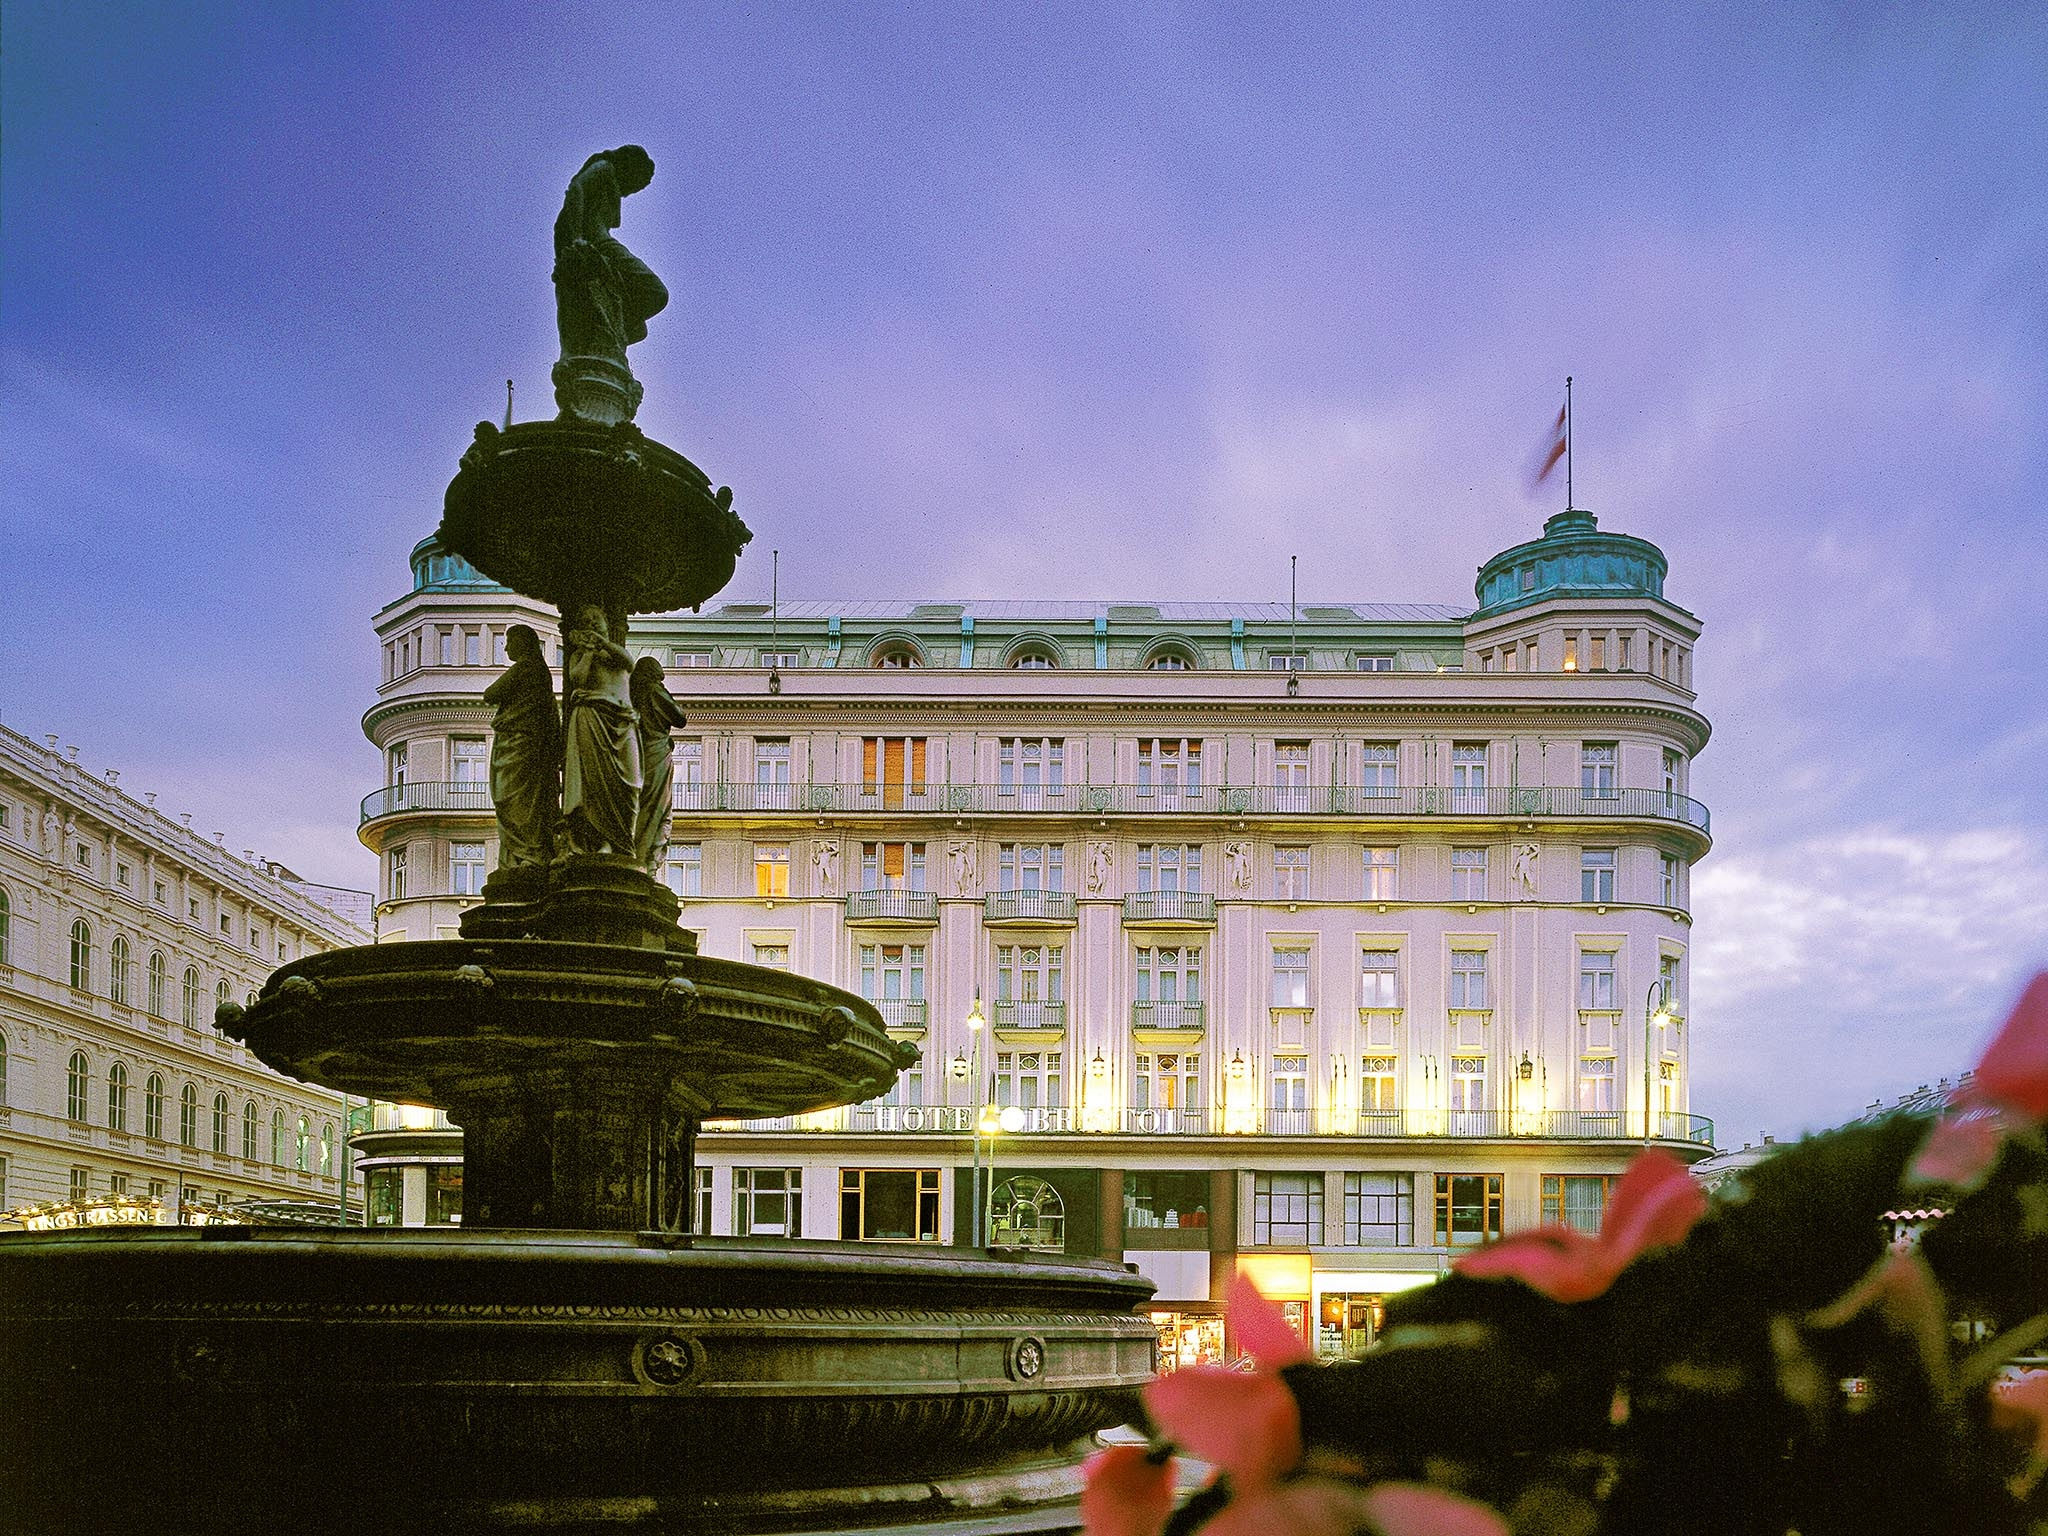 Hotel Bristol Wien - A Luxury Collection Hotel